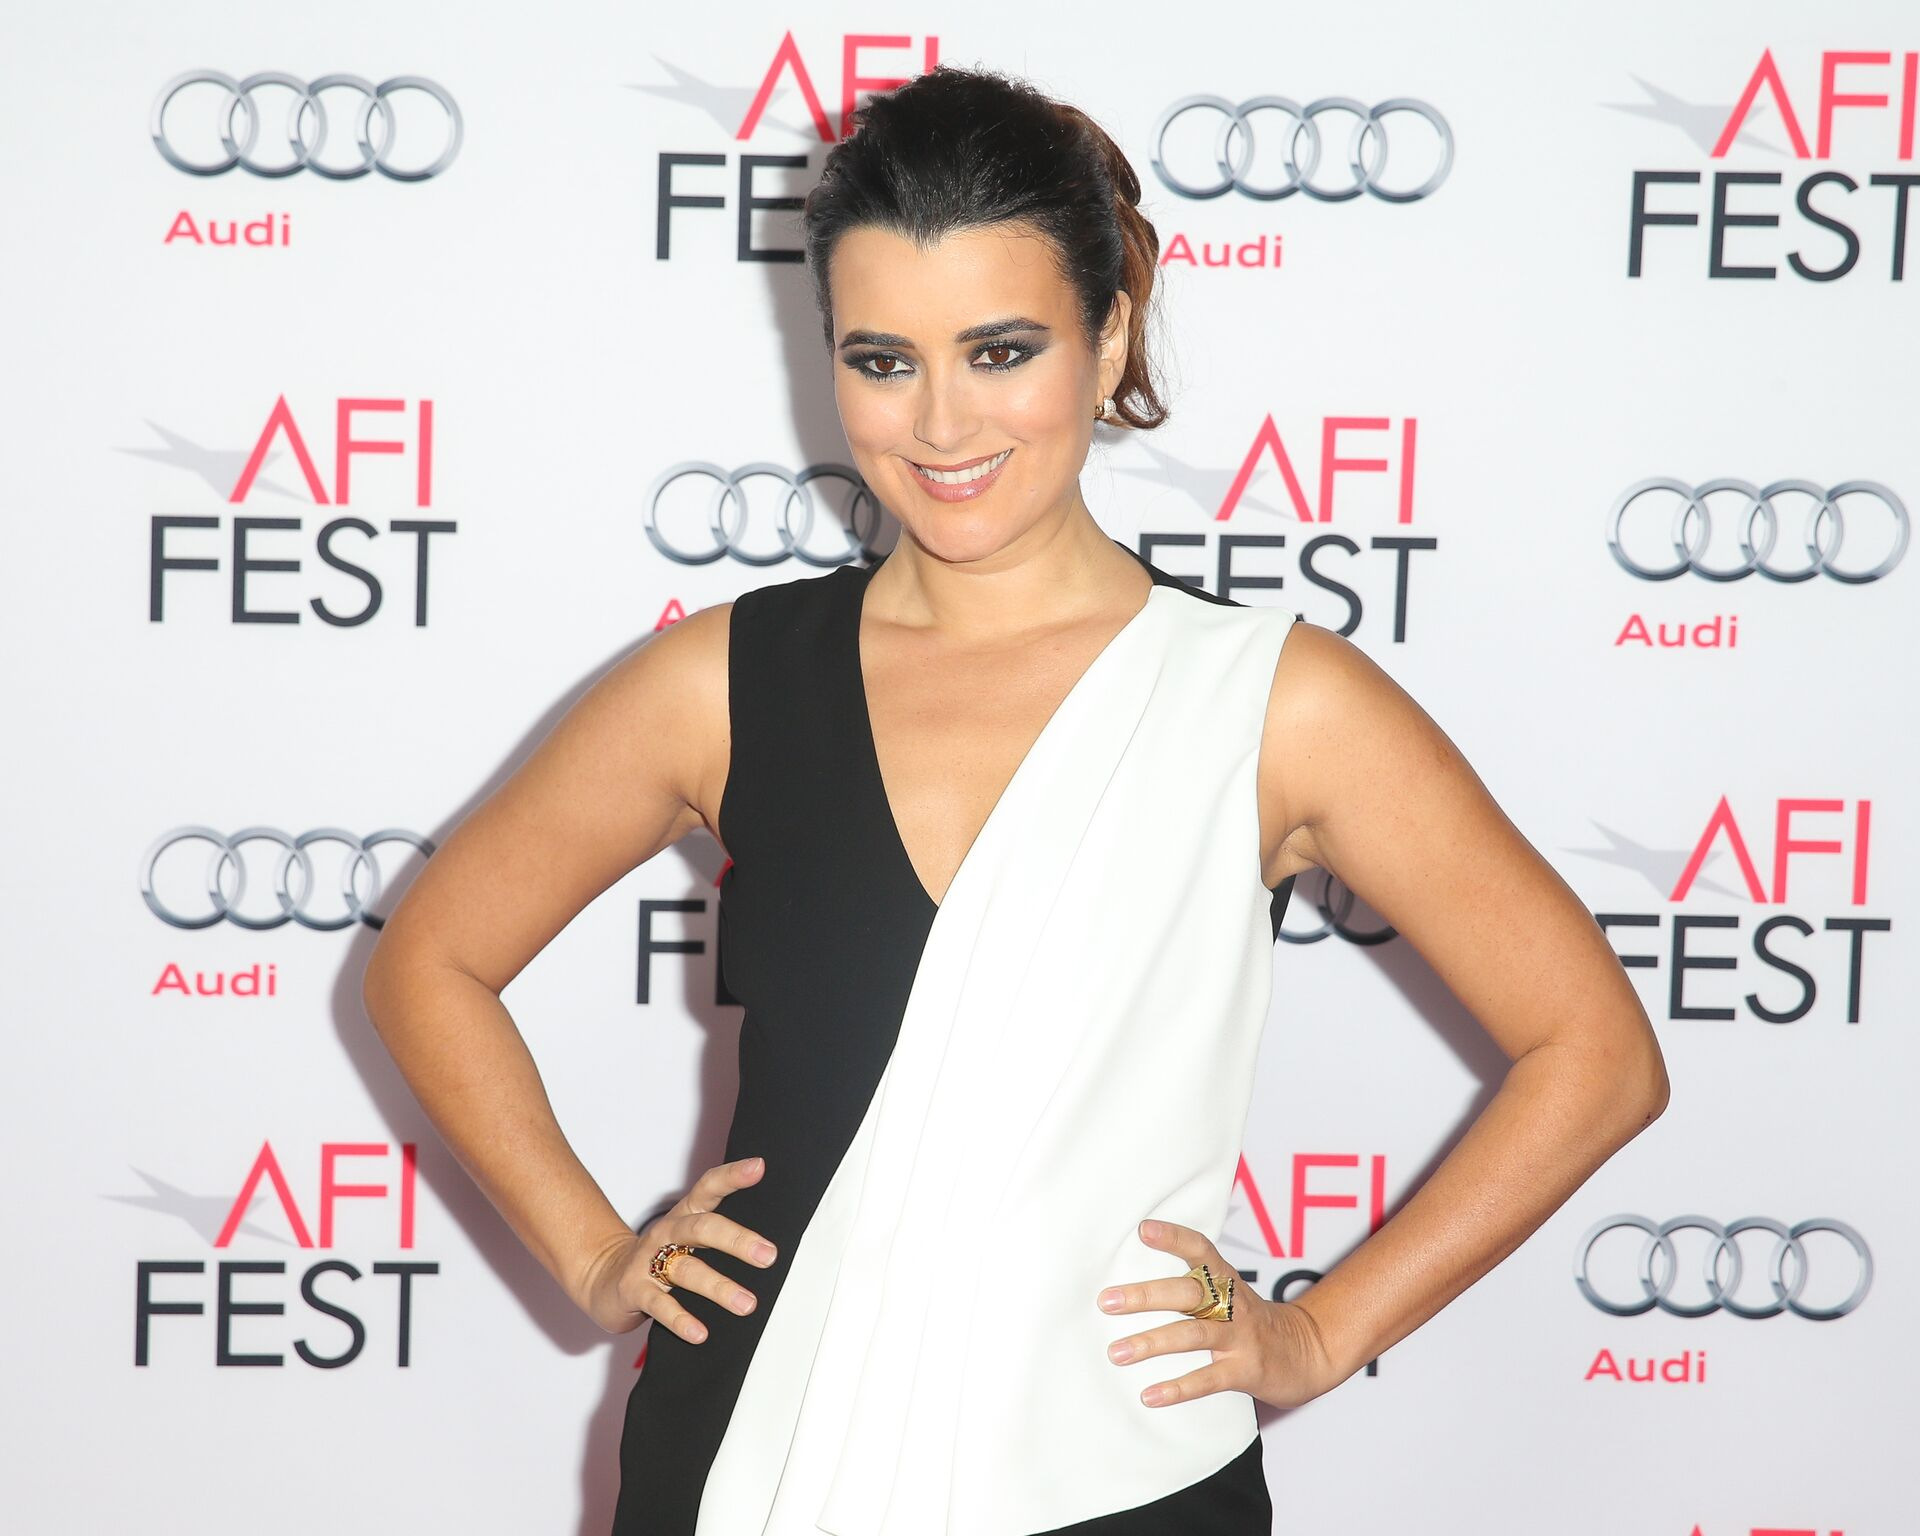 Actress Cote de Pablo attends the Centerpiece Gala premiere of Alcon Entertainment's 'The 33' at TCL Chinese Theatre | Getty Images